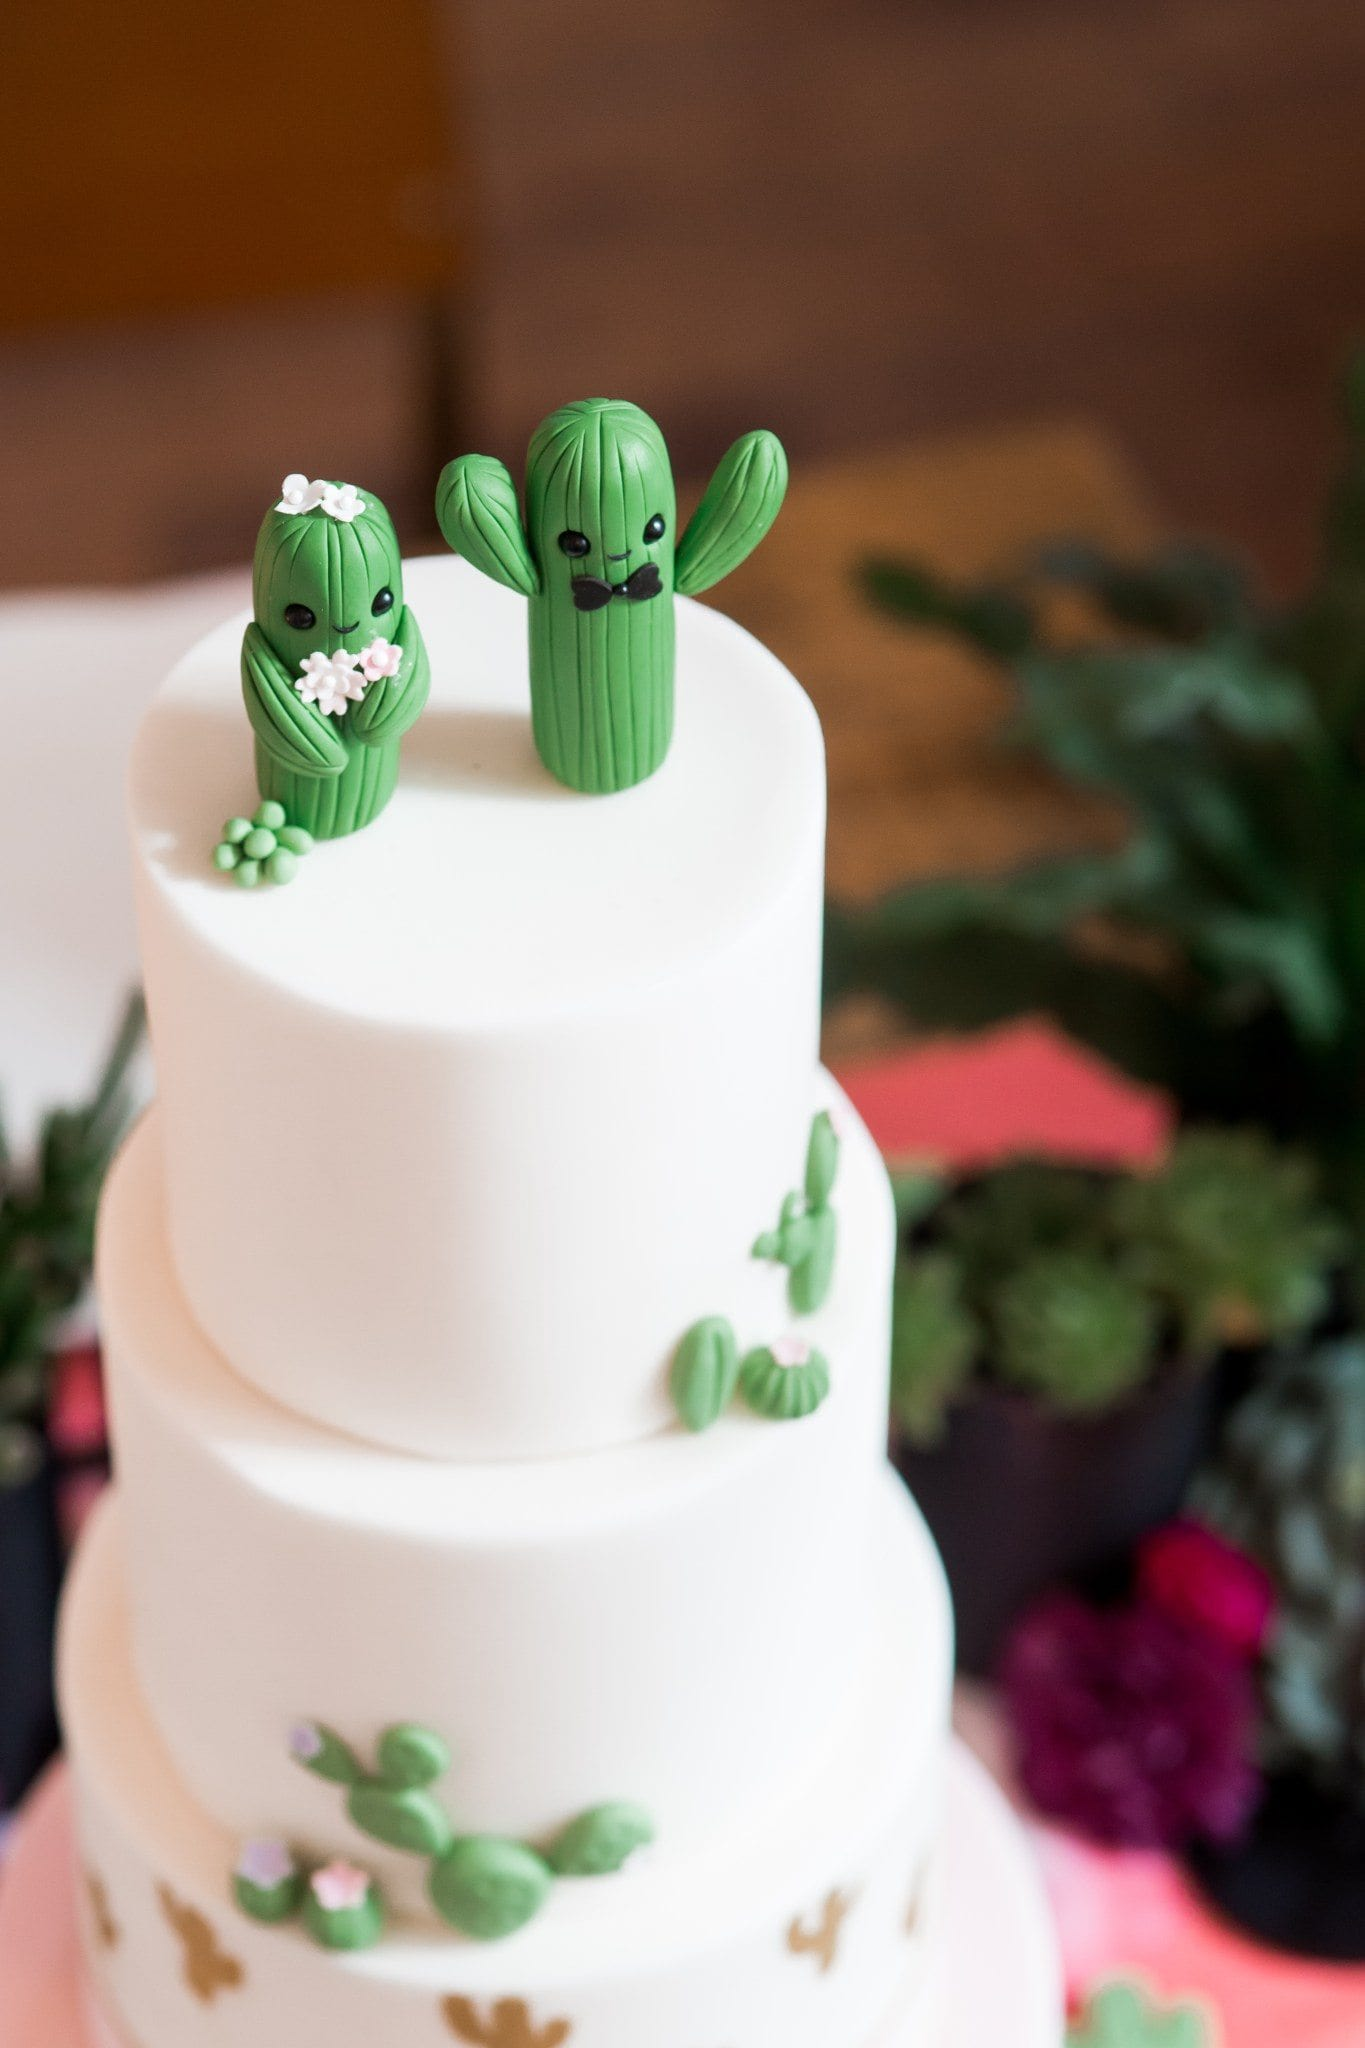 Tiered cake with bride and groom cactus fondant cake topper